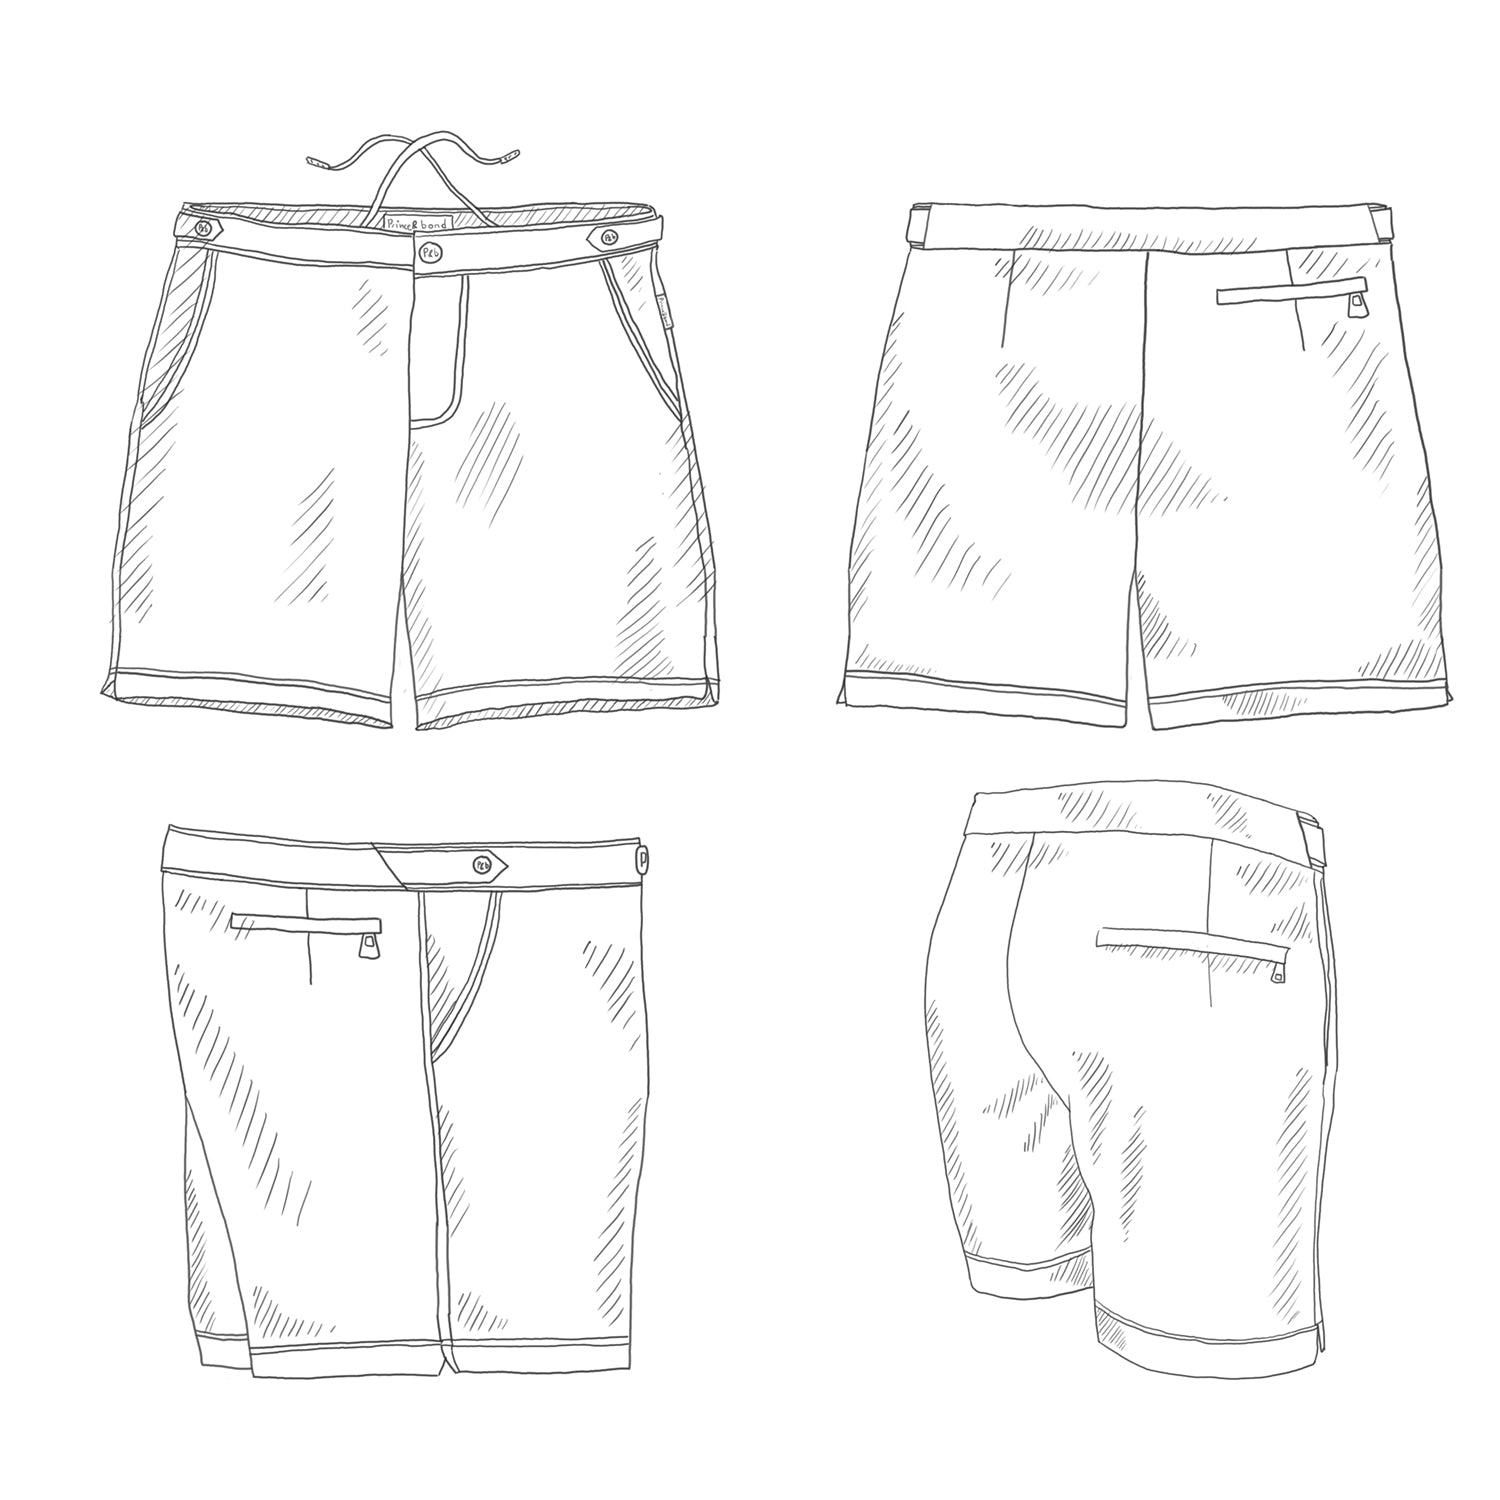 Shorts - Fit,  Fabric and Hardware